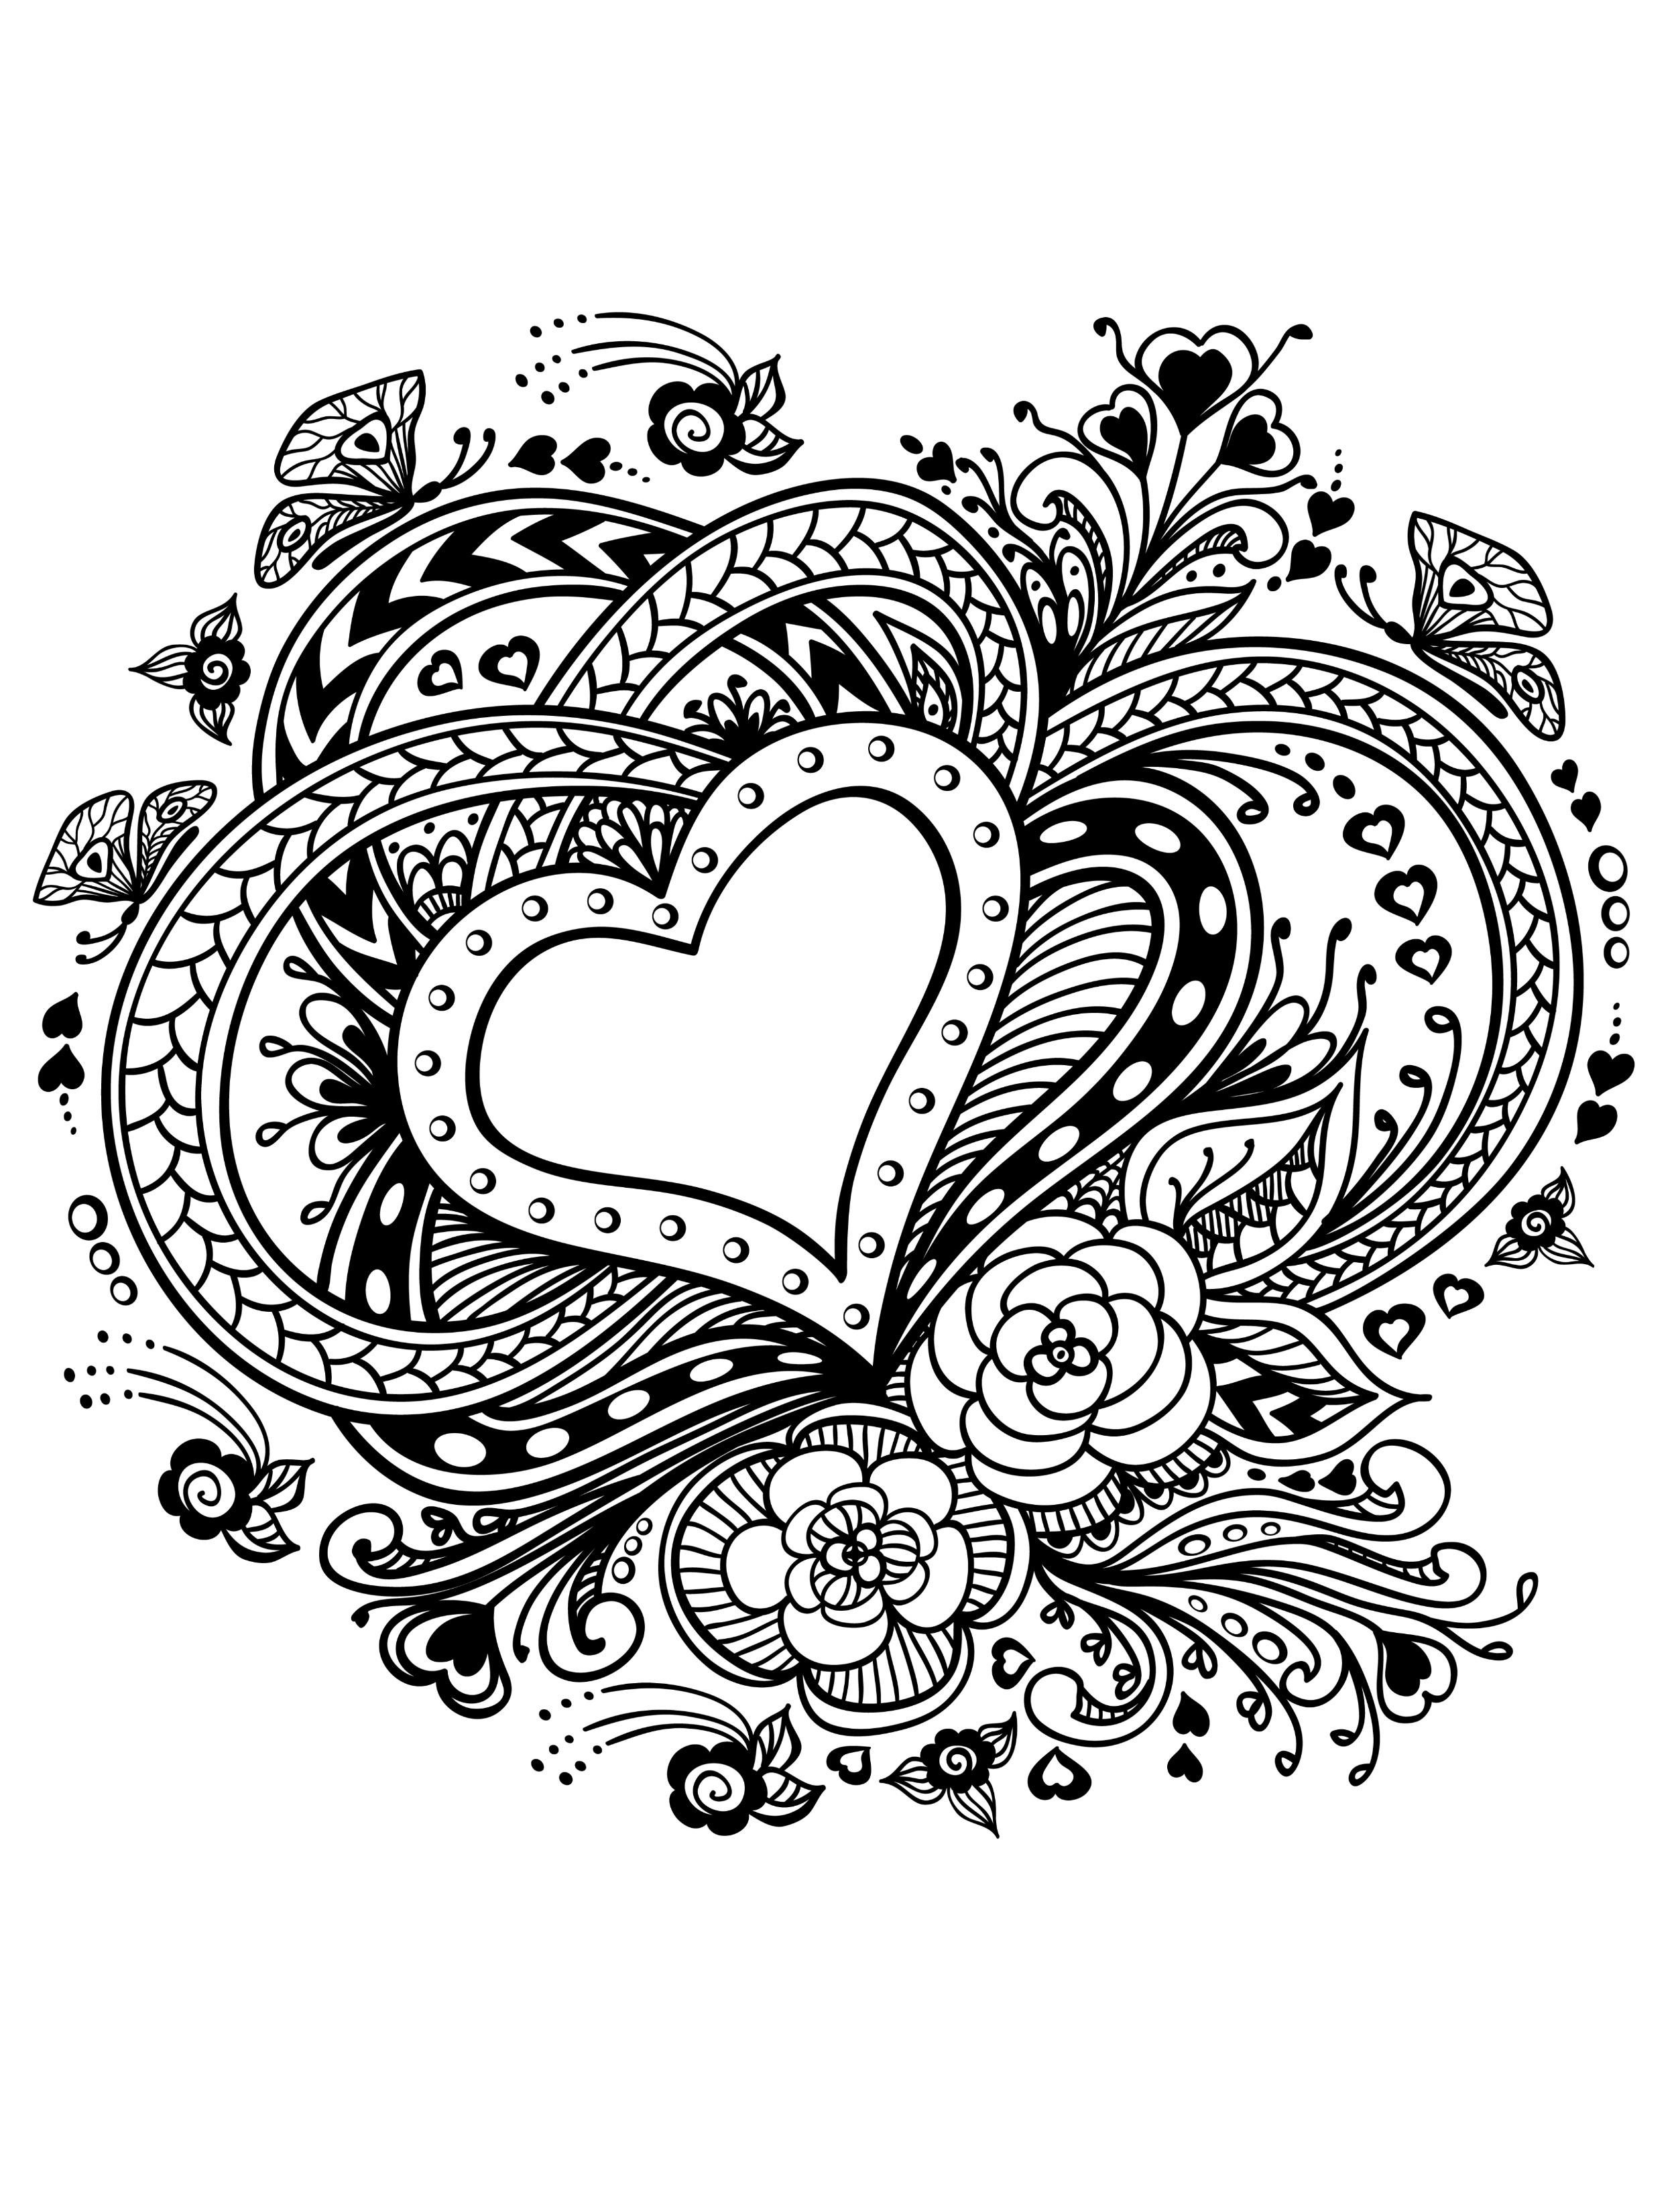 valentines day heart coloring pages simple heart happy valentine39s day coloring page pages valentines coloring heart day